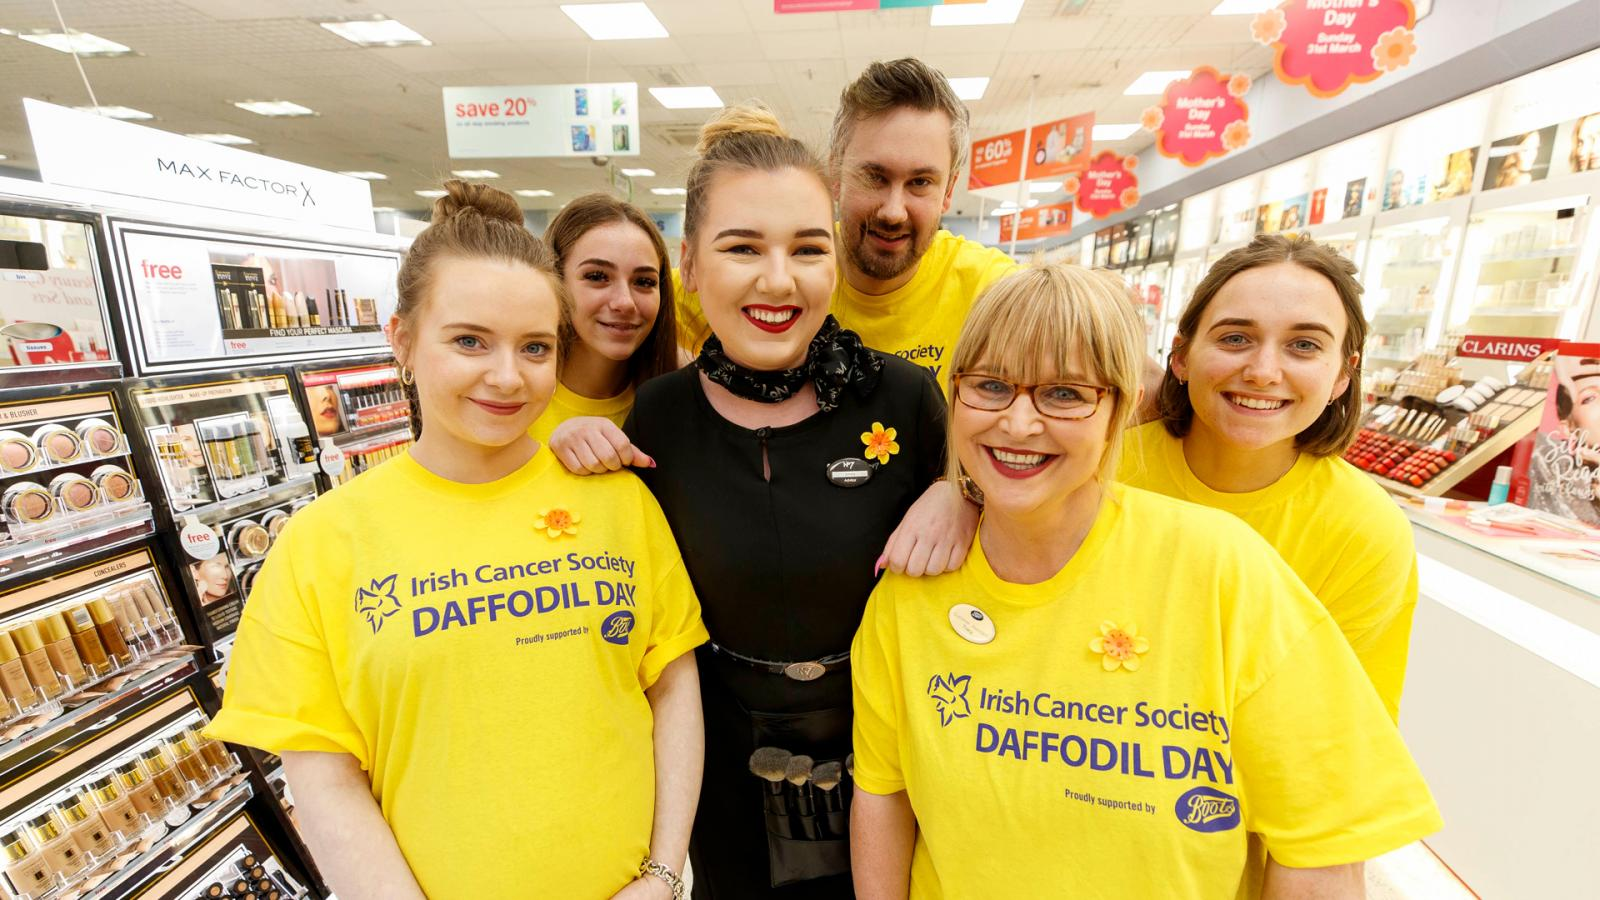 Boots employees on Daffodil Day